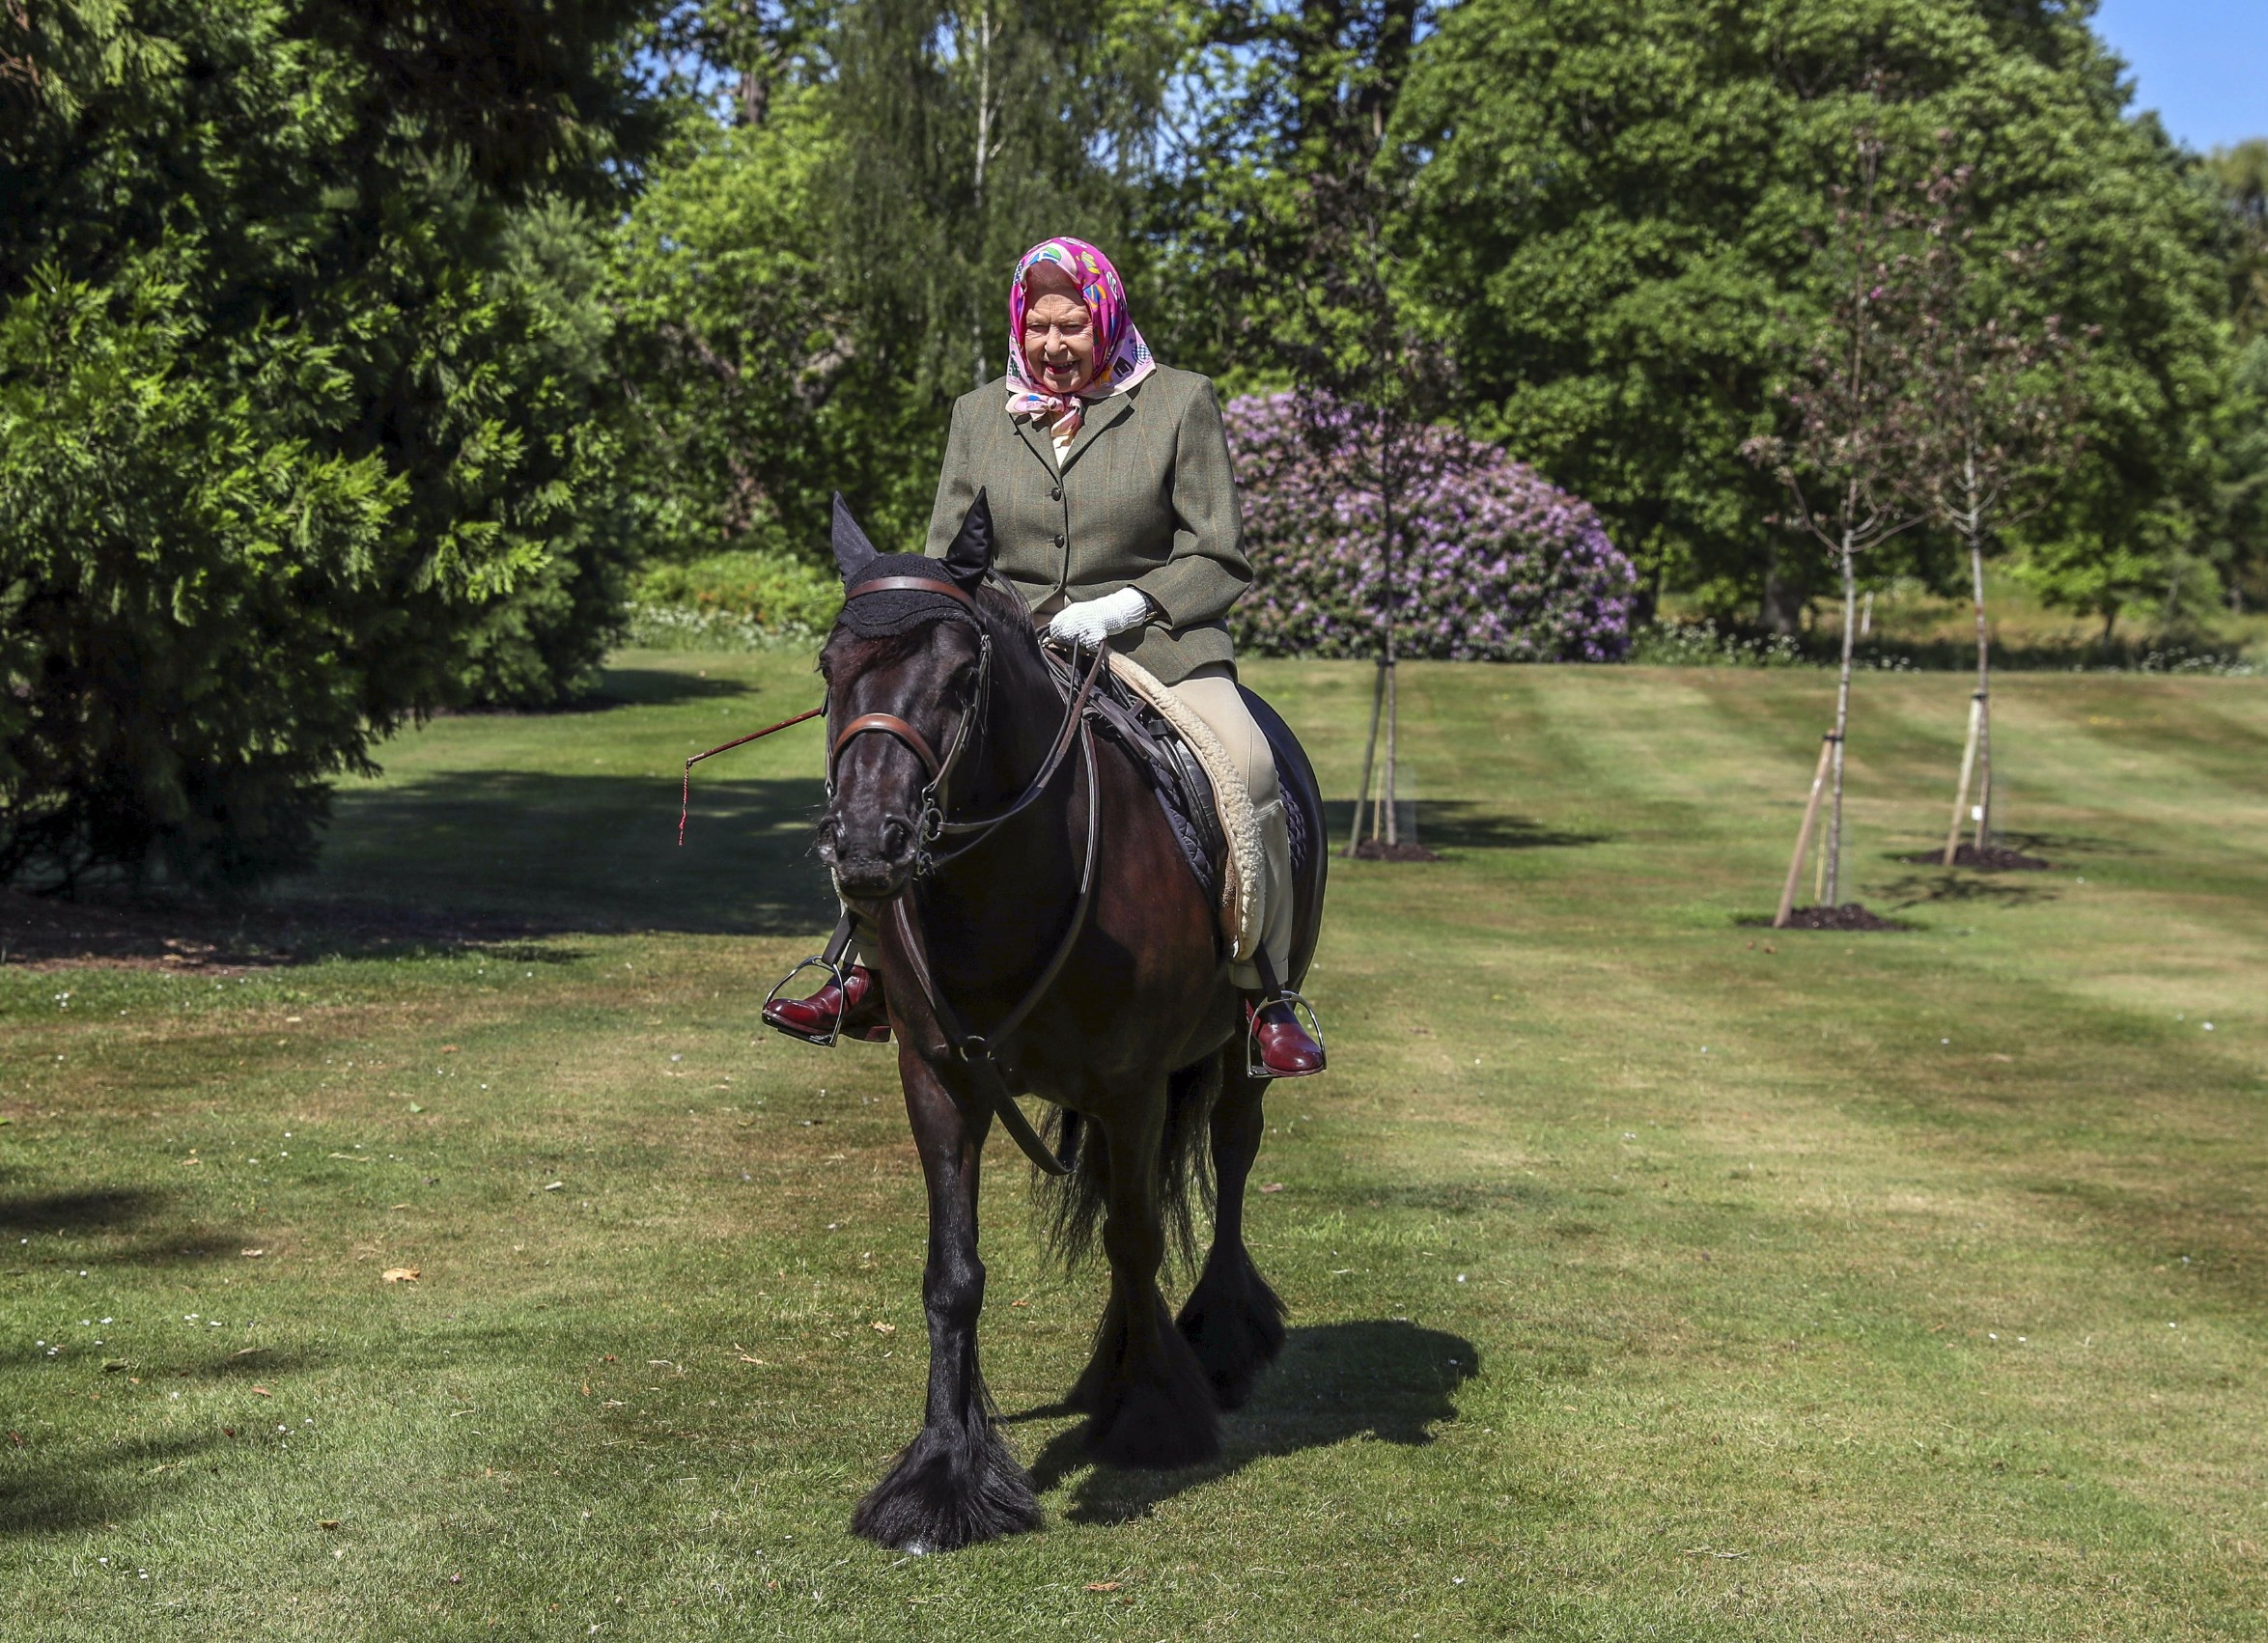 Queen Elizabeth II rides Balmoral Fern, a 14-year-old Fell Pony, in Windsor Home Park over the weekend. The Queen has been in residence at Windsor Castle during the coronavirus pandemic.,Image: 524413447, License: Rights-managed, Restrictions: FILE PHOTO, Model Release: no